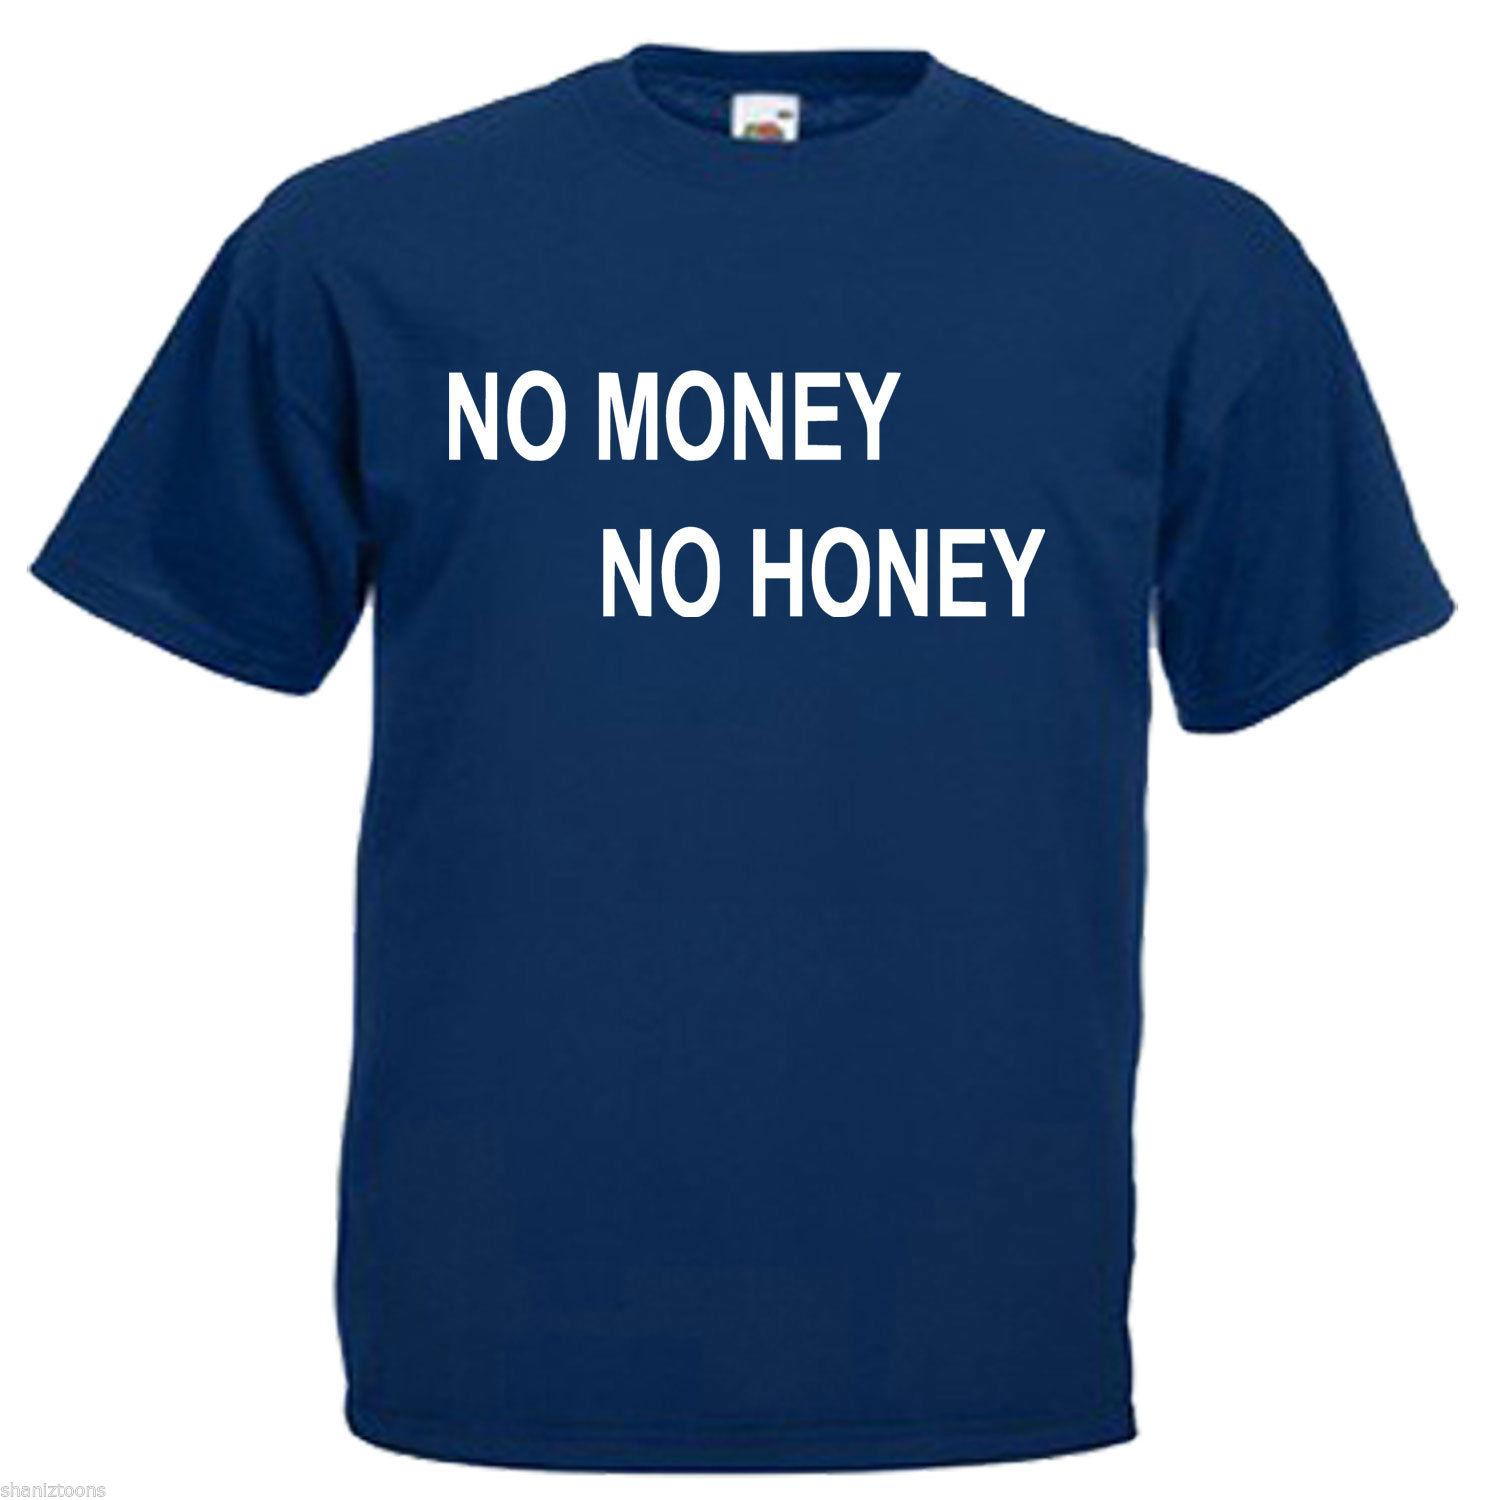 No Money No Honey Mens T Shirt 12 Colours Size S 3XL Funny Unisex Casual Tee  Gift Mens Tee Shirts Rude T Shirts From Fat dad,  10.18  DHgate.Com 184953d9cff2